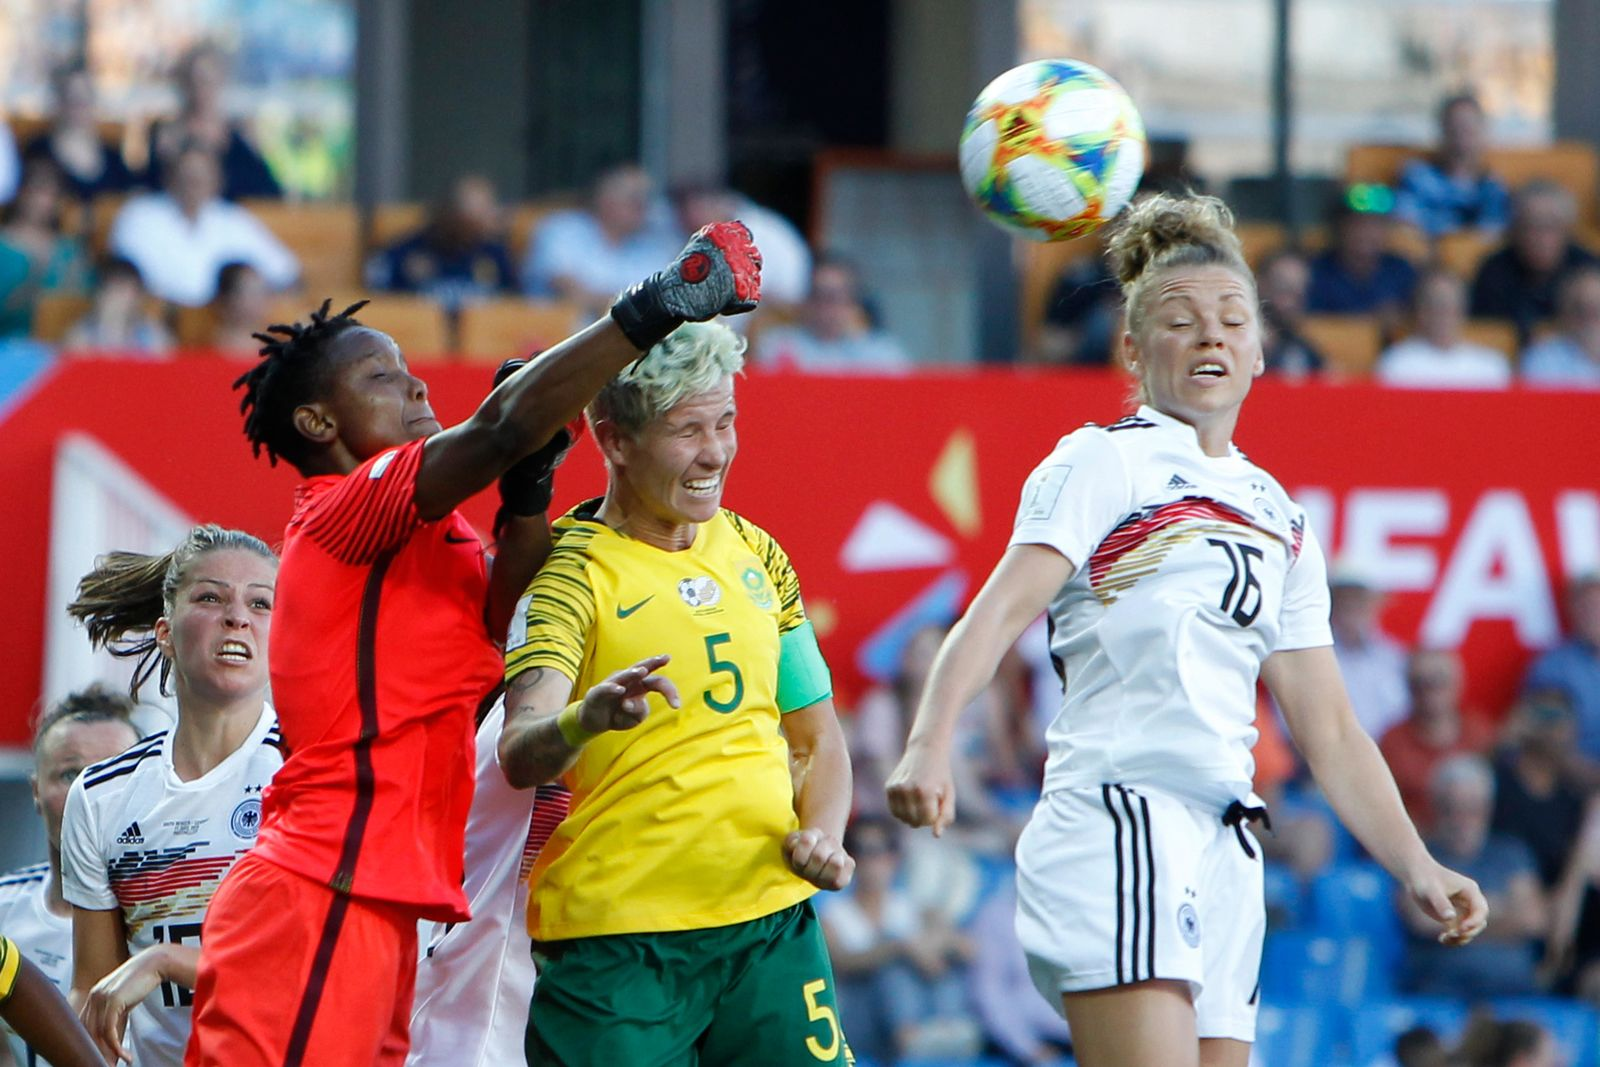 South Africa goalkeeper Andile Dlamini, left, clears the ball against Germany's Linda Dallmann, right during the Women's World Cup Group B soccer match between South Africa and Germany at the Stade de la Mosson in Montpellier, France, Monday, June 17, 2019. (AP Photo/Claude Paris)